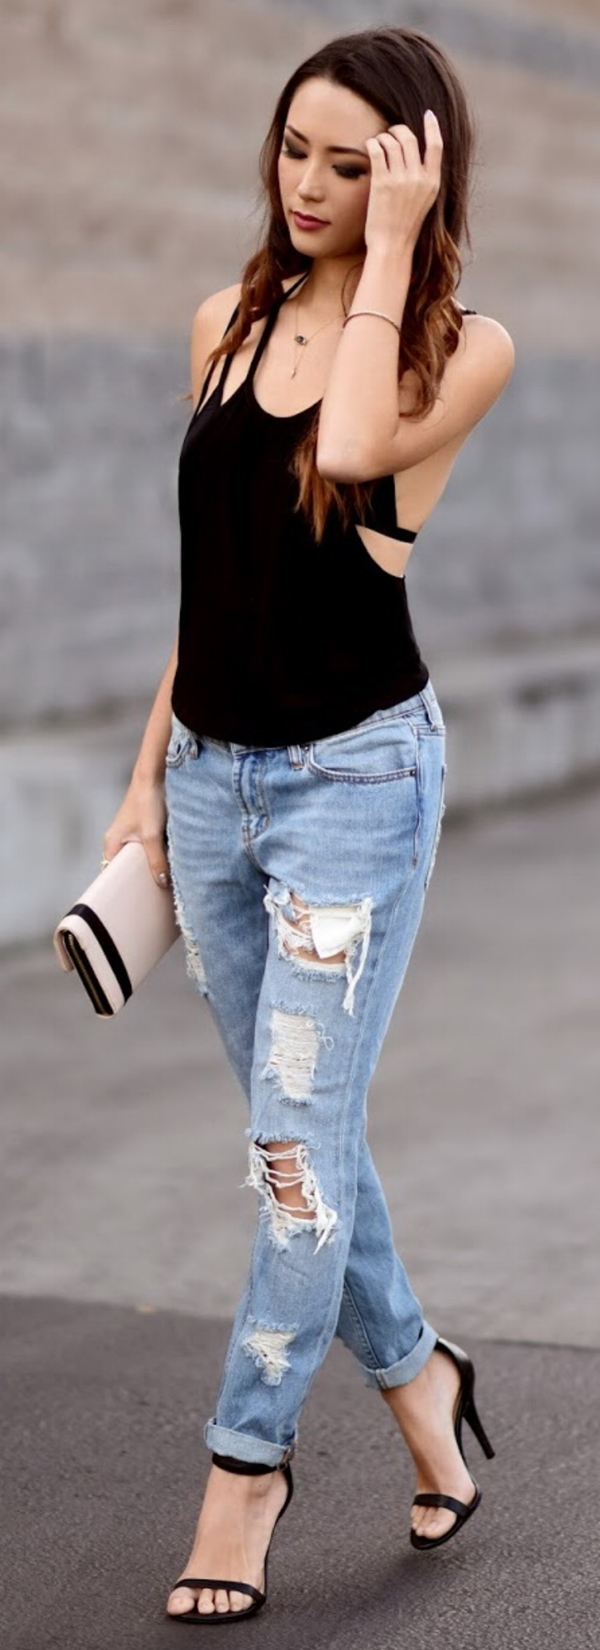 glamorous-outfit-ideas-for-flat-chested-women